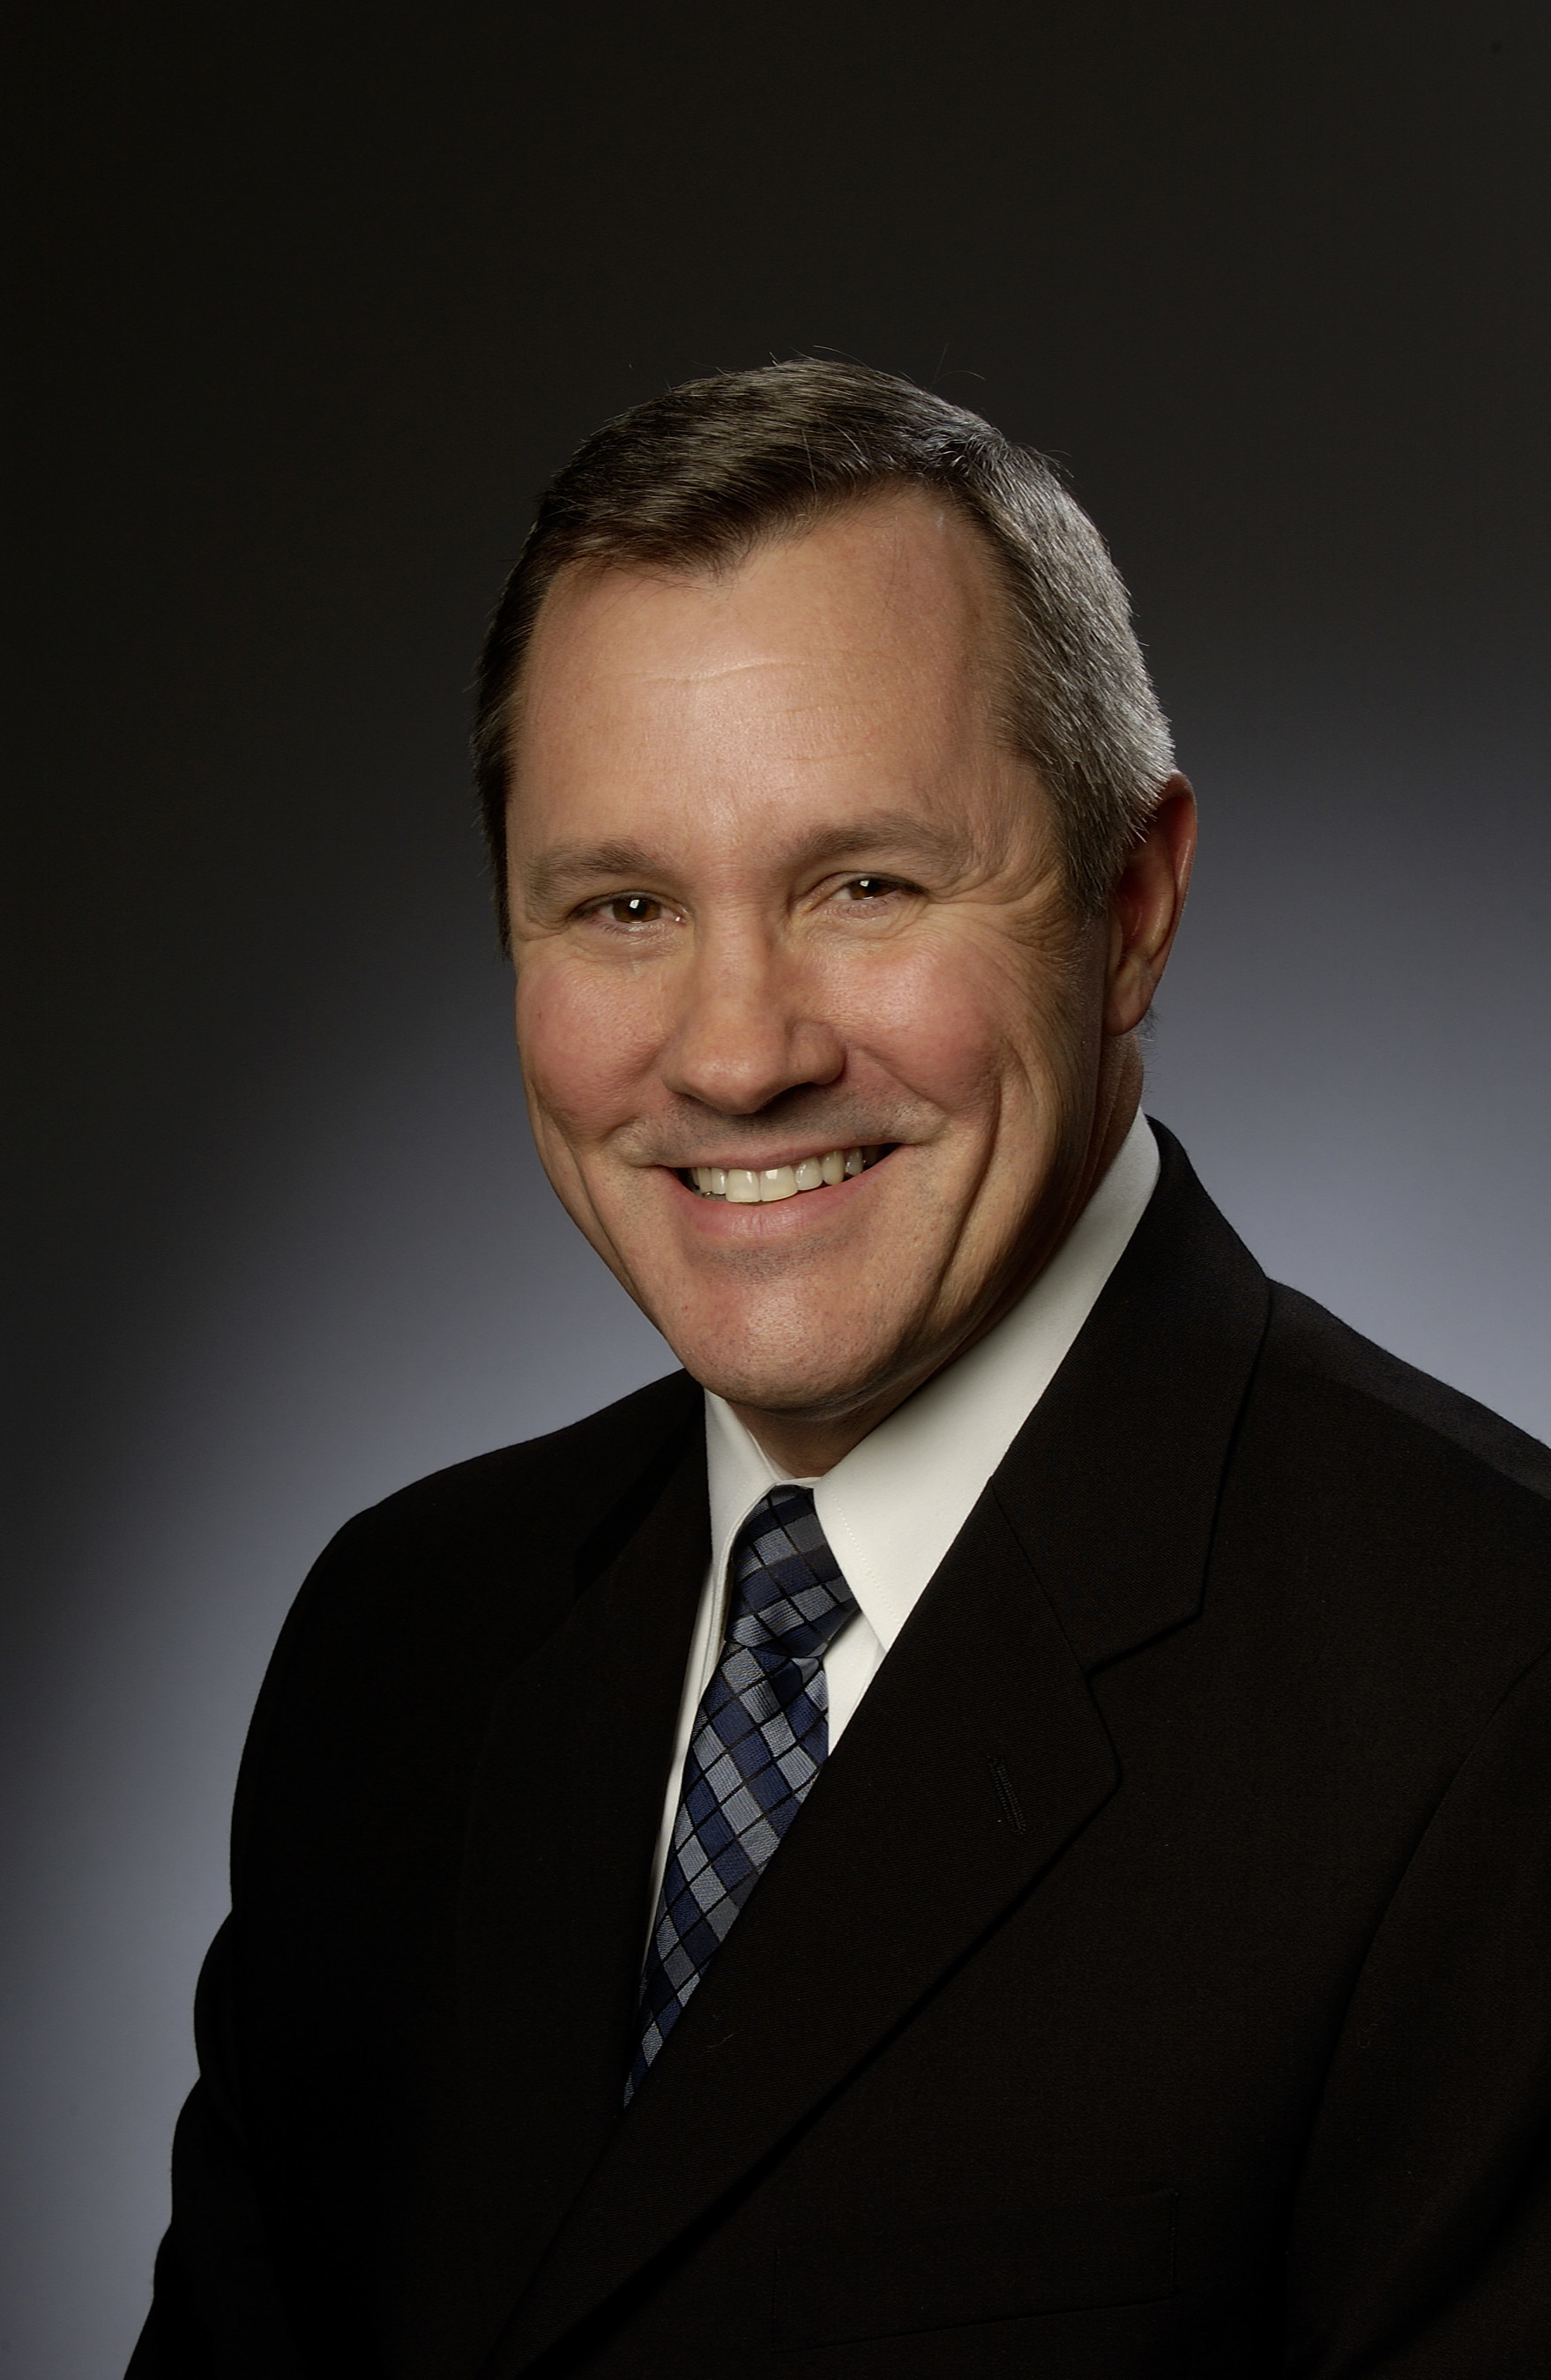 OrthoAccel Technologies, Inc. today announced that Len Hedge, a retired Align Technology senior executive, has joined OrthoAccel's board of directors. The leader in accelerated orthodontics, OrthoAccel develops and manufactures AcceleDent, the first and only FDA-cleared, Class II medical device that speeds up orthodontic treatment by as much as 50 percent.